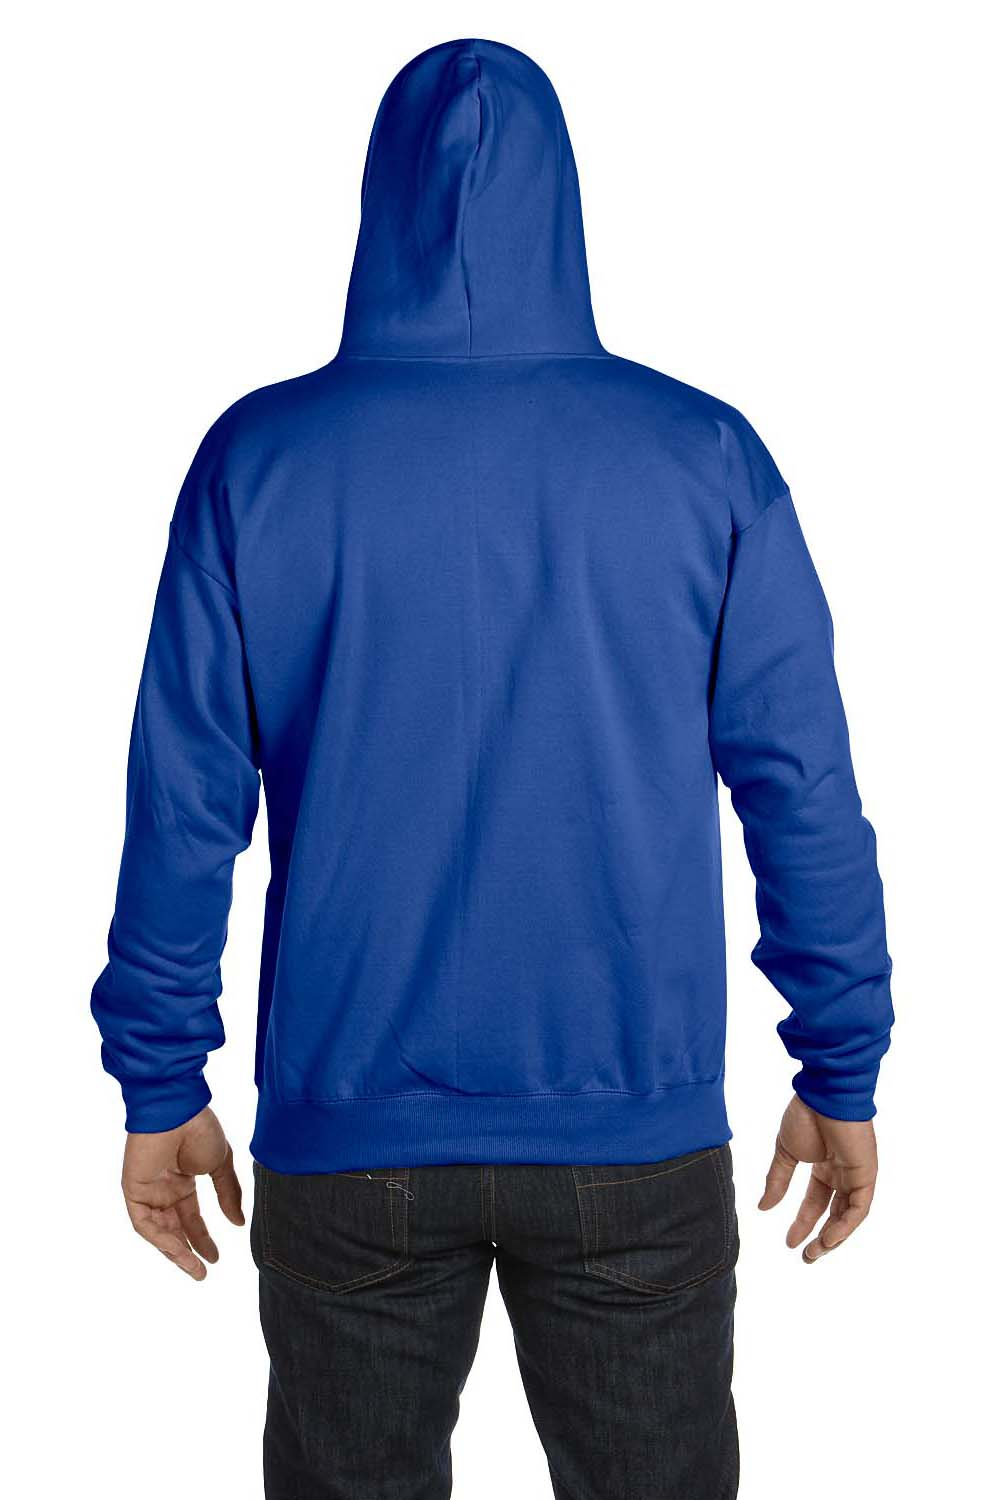 Hanes P180 Mens EcoSmart Print Pro XP Full Zip Hooded Sweatshirt Hoodie Royal Blue Back